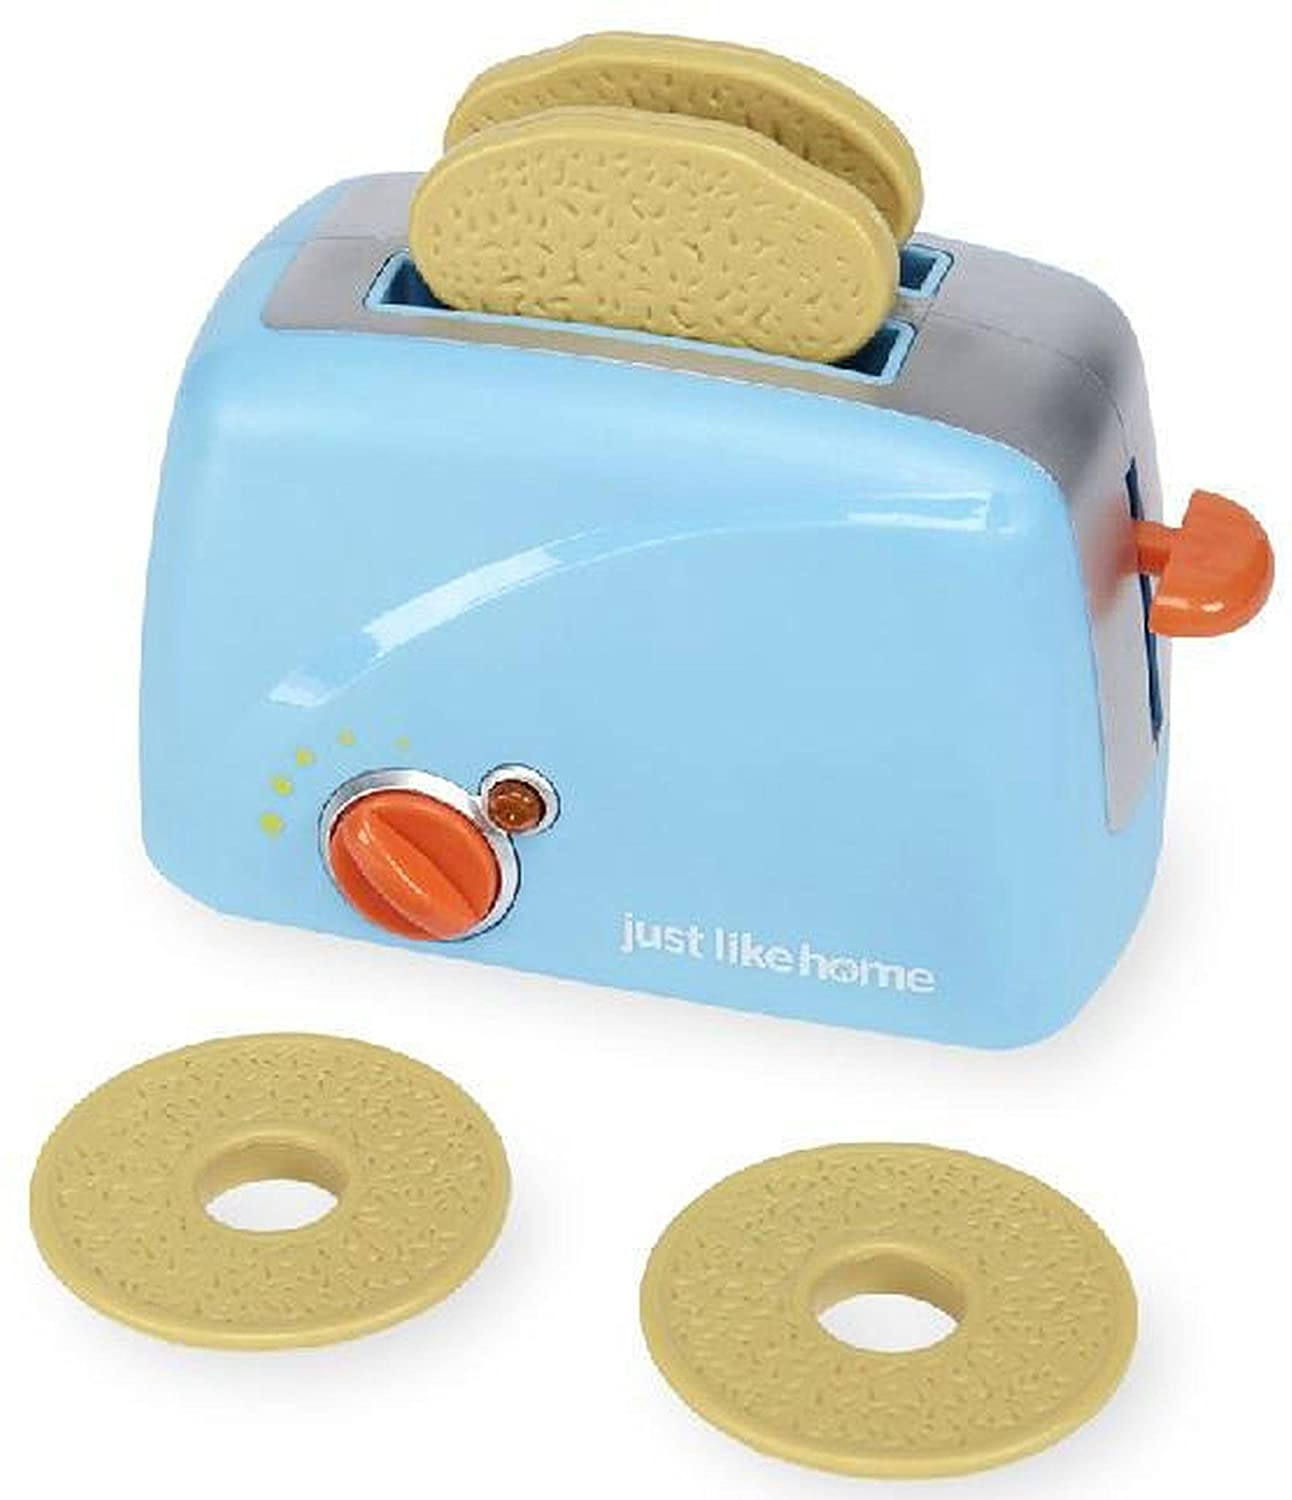 Just Like Home AD11968 Toaster Playset - Blue